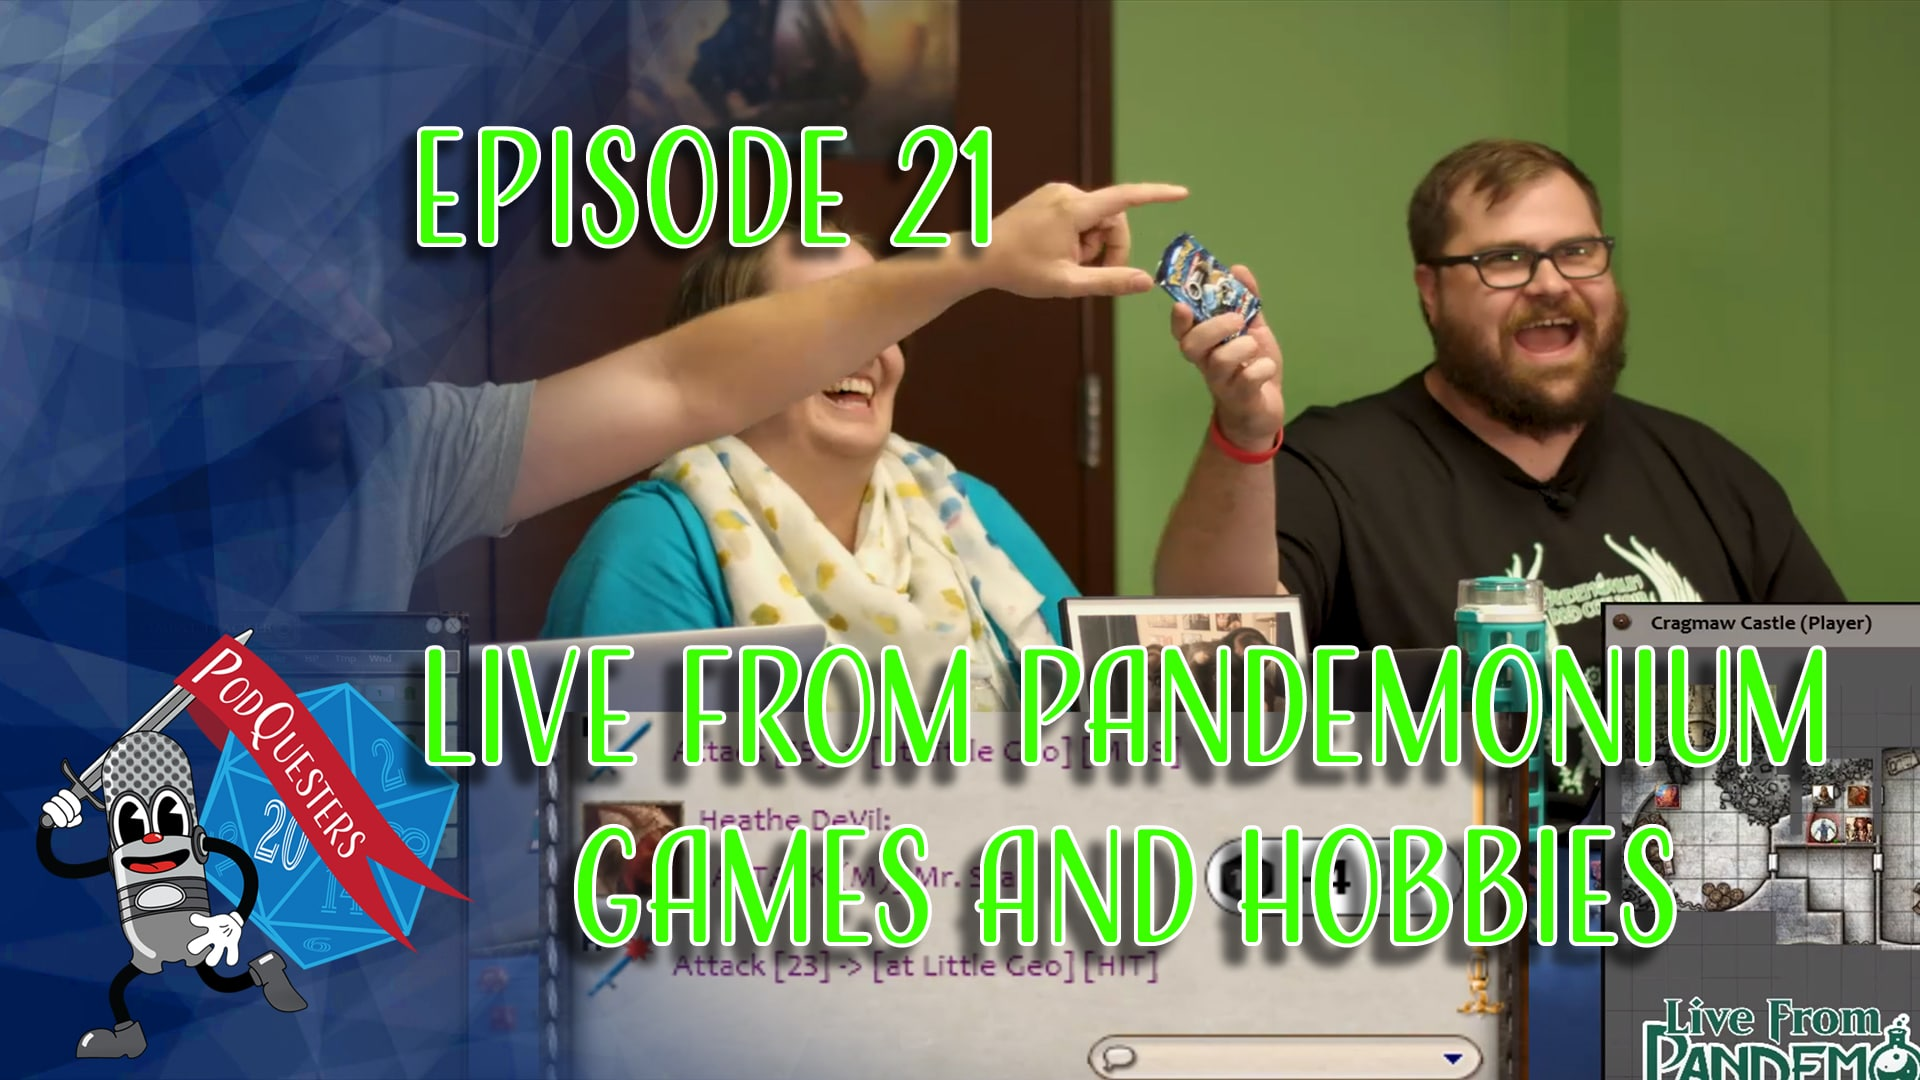 Podquesters - Episode 21: Live from Pandemonium Games and Hobbies